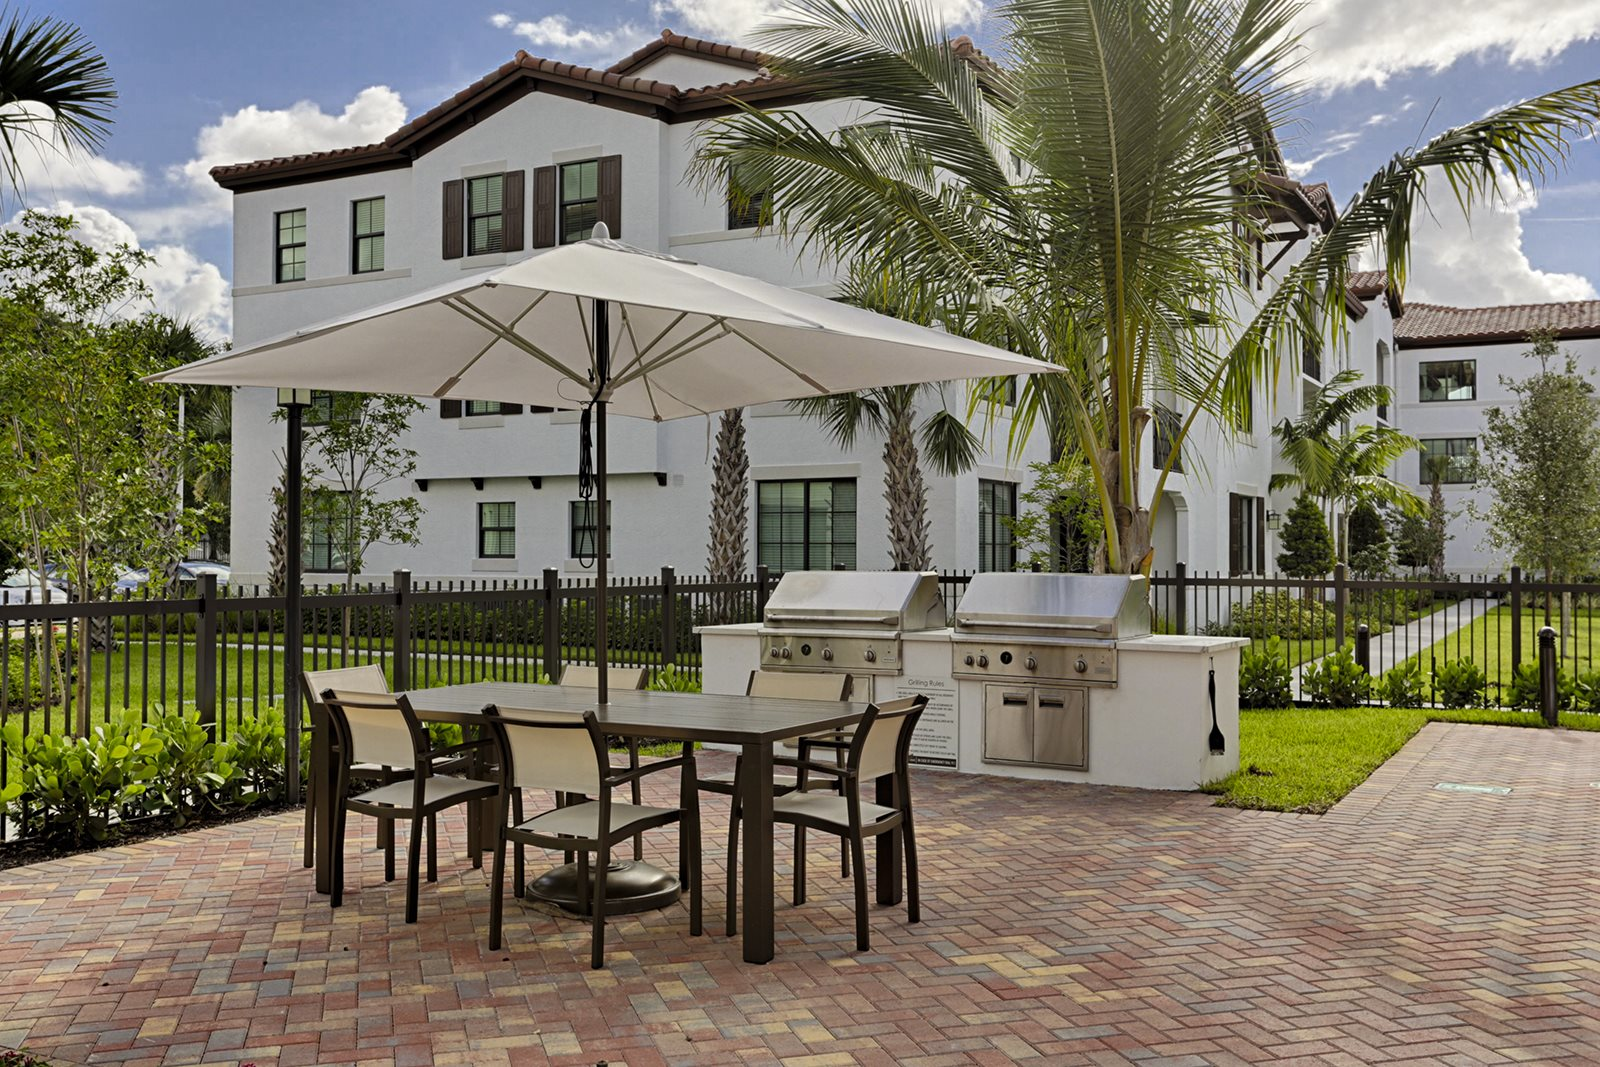 Barbecue Grills- Apartments for Rent in Doral, FL